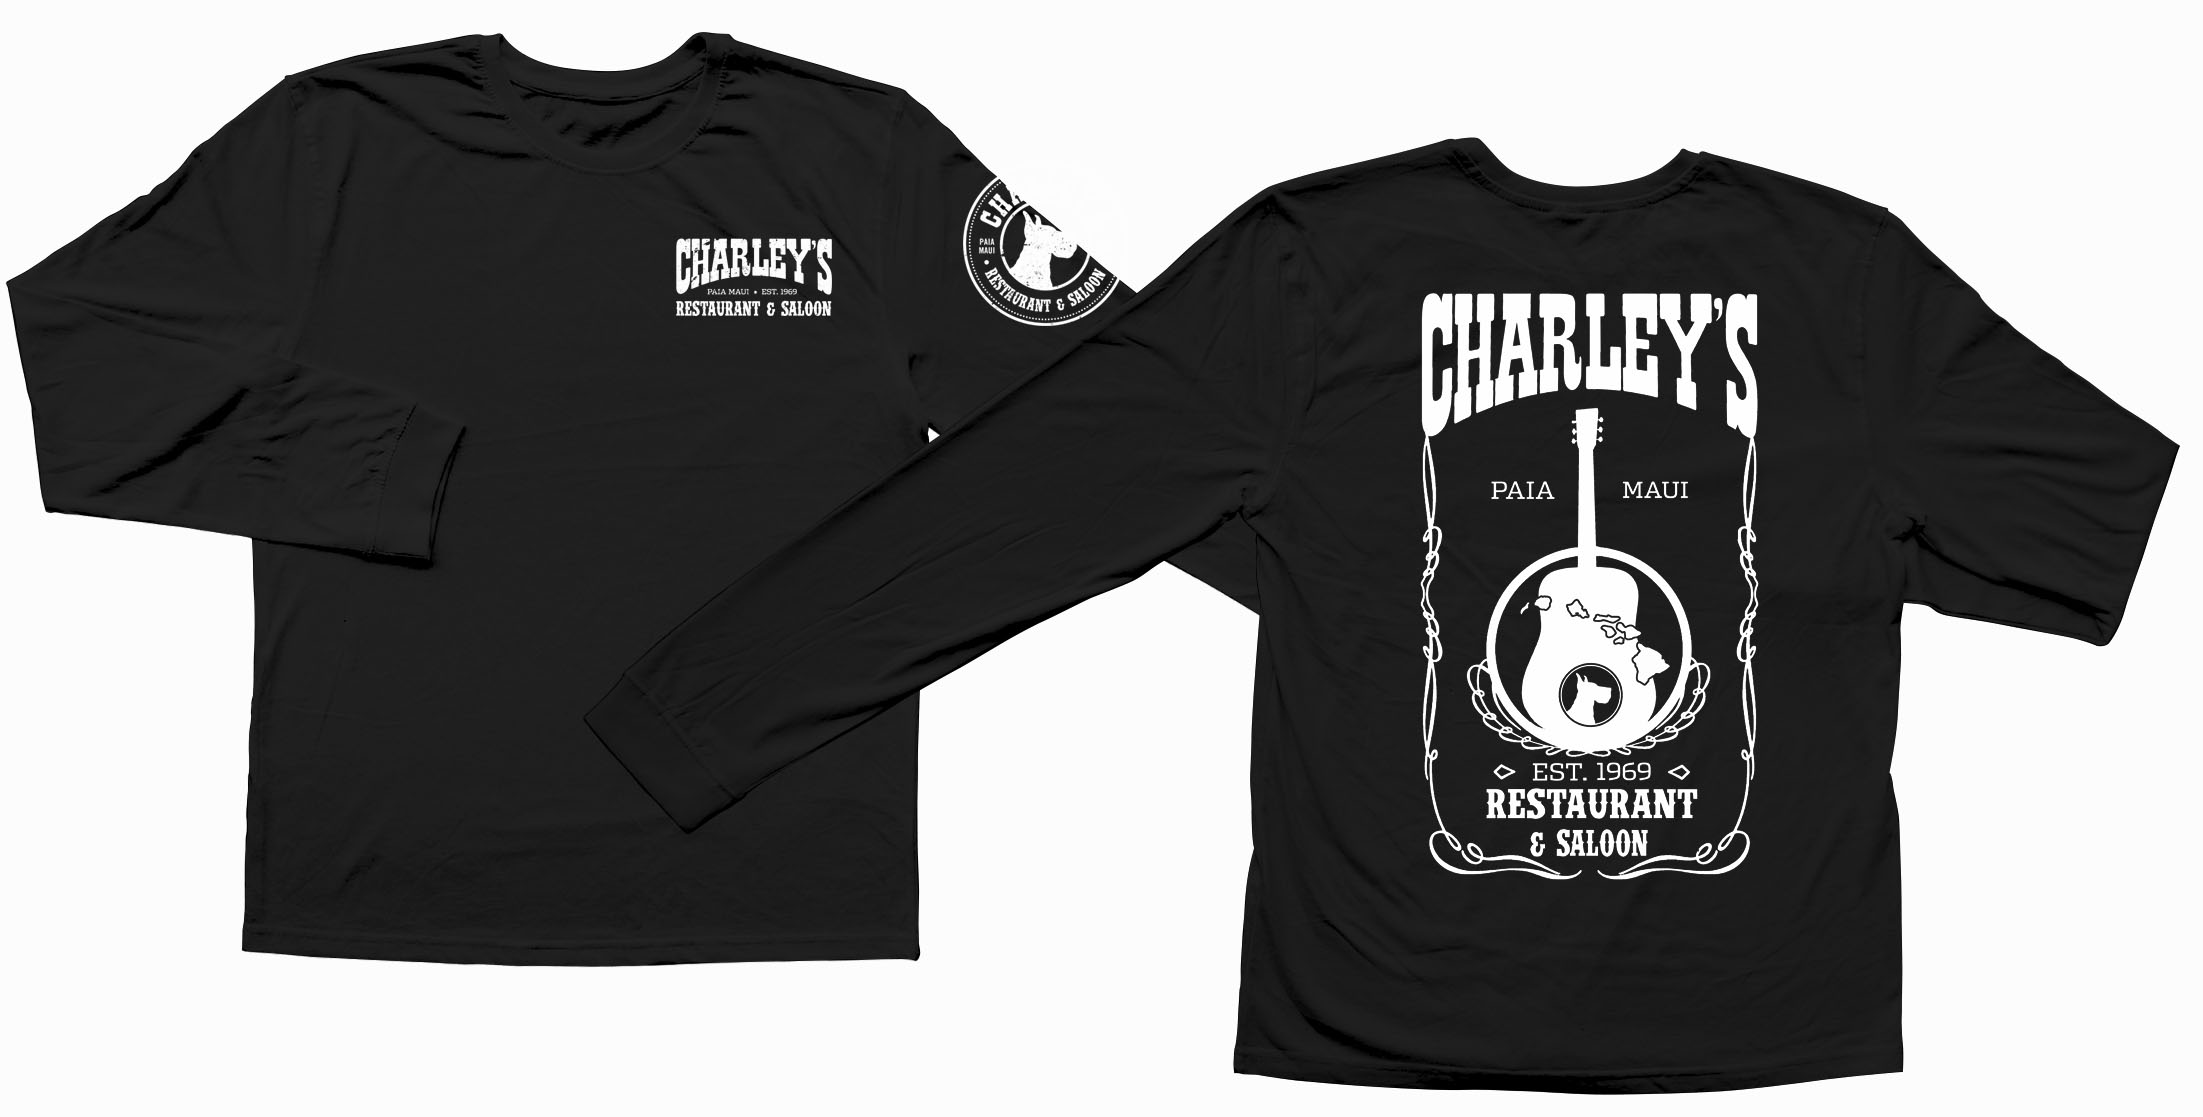 Woman's Long Sleeve - Black with White guitar logo